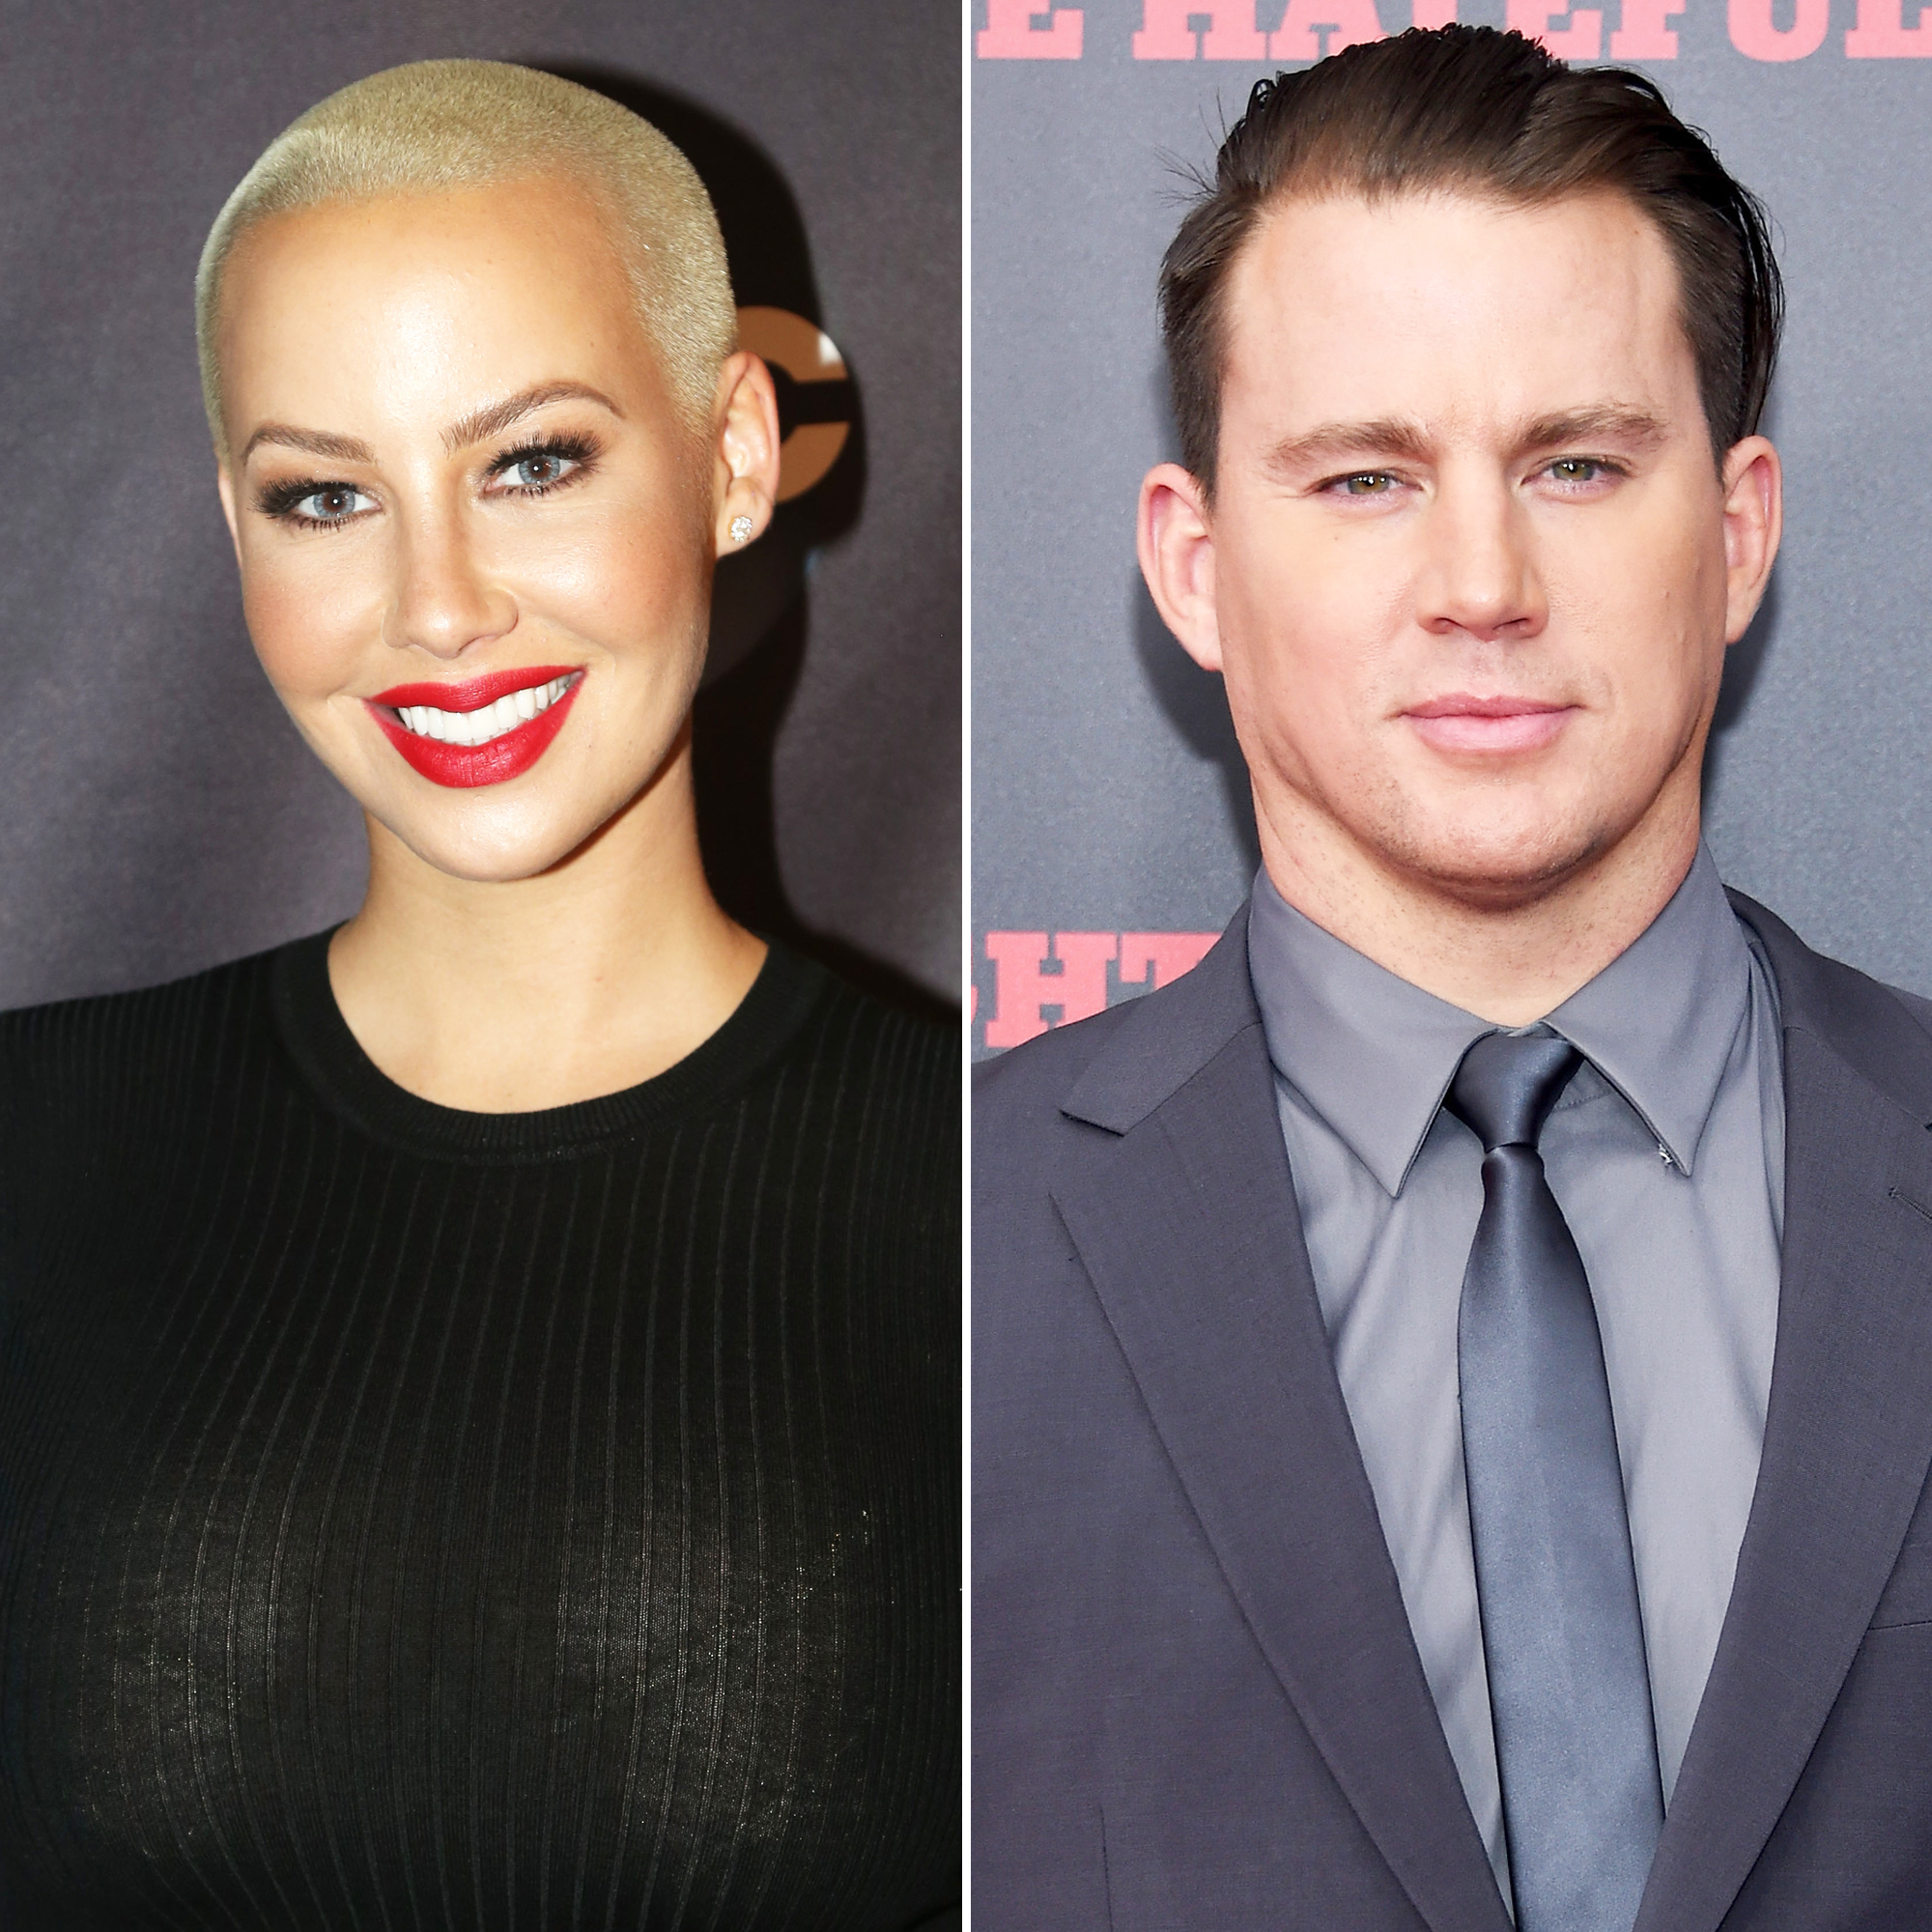 Amber Rose and Channing Tatum